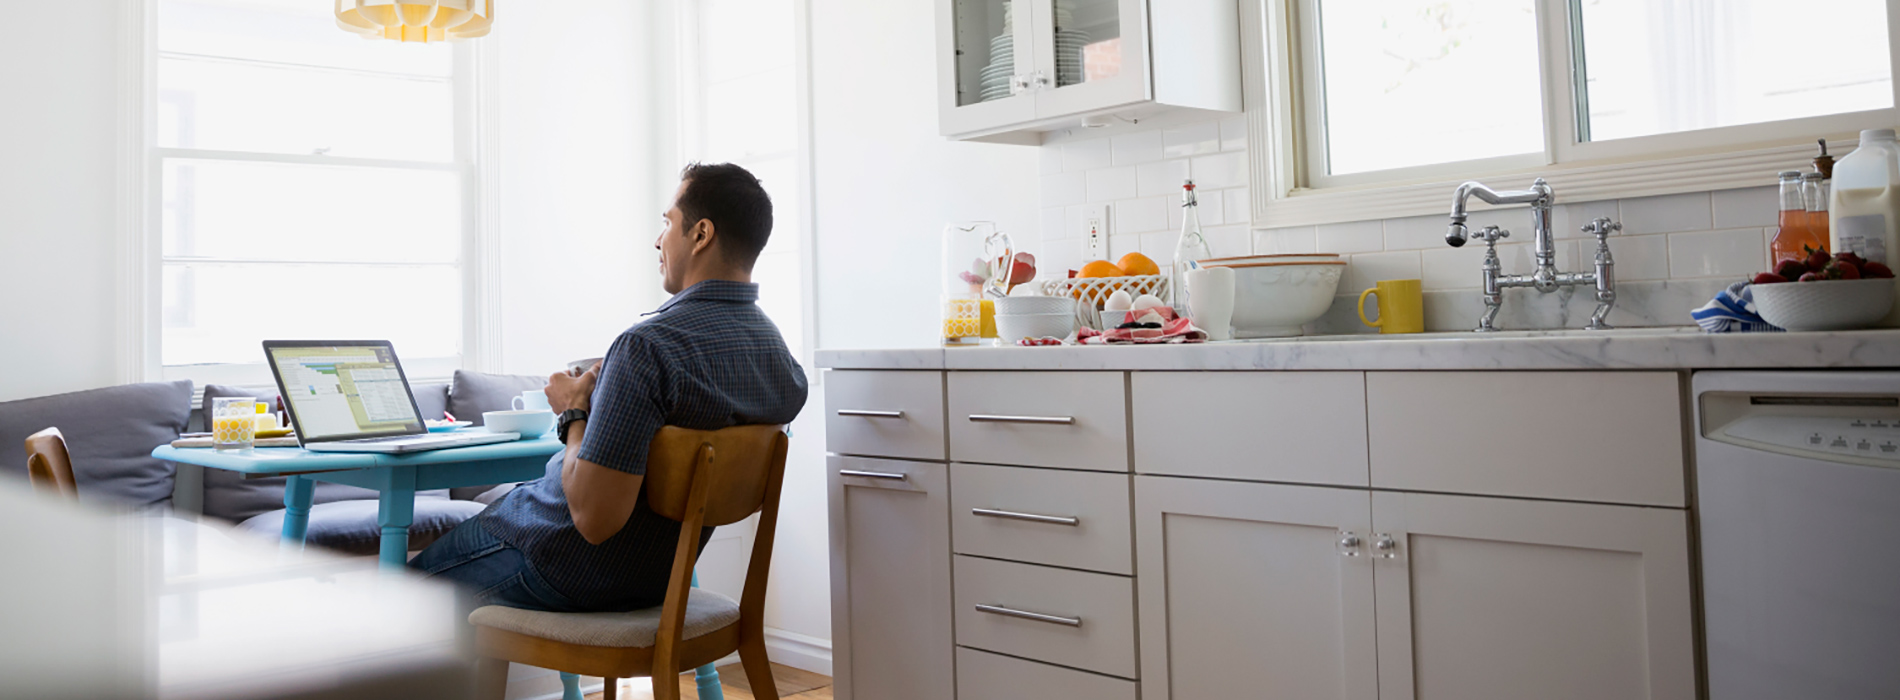 Man working comfortably at home